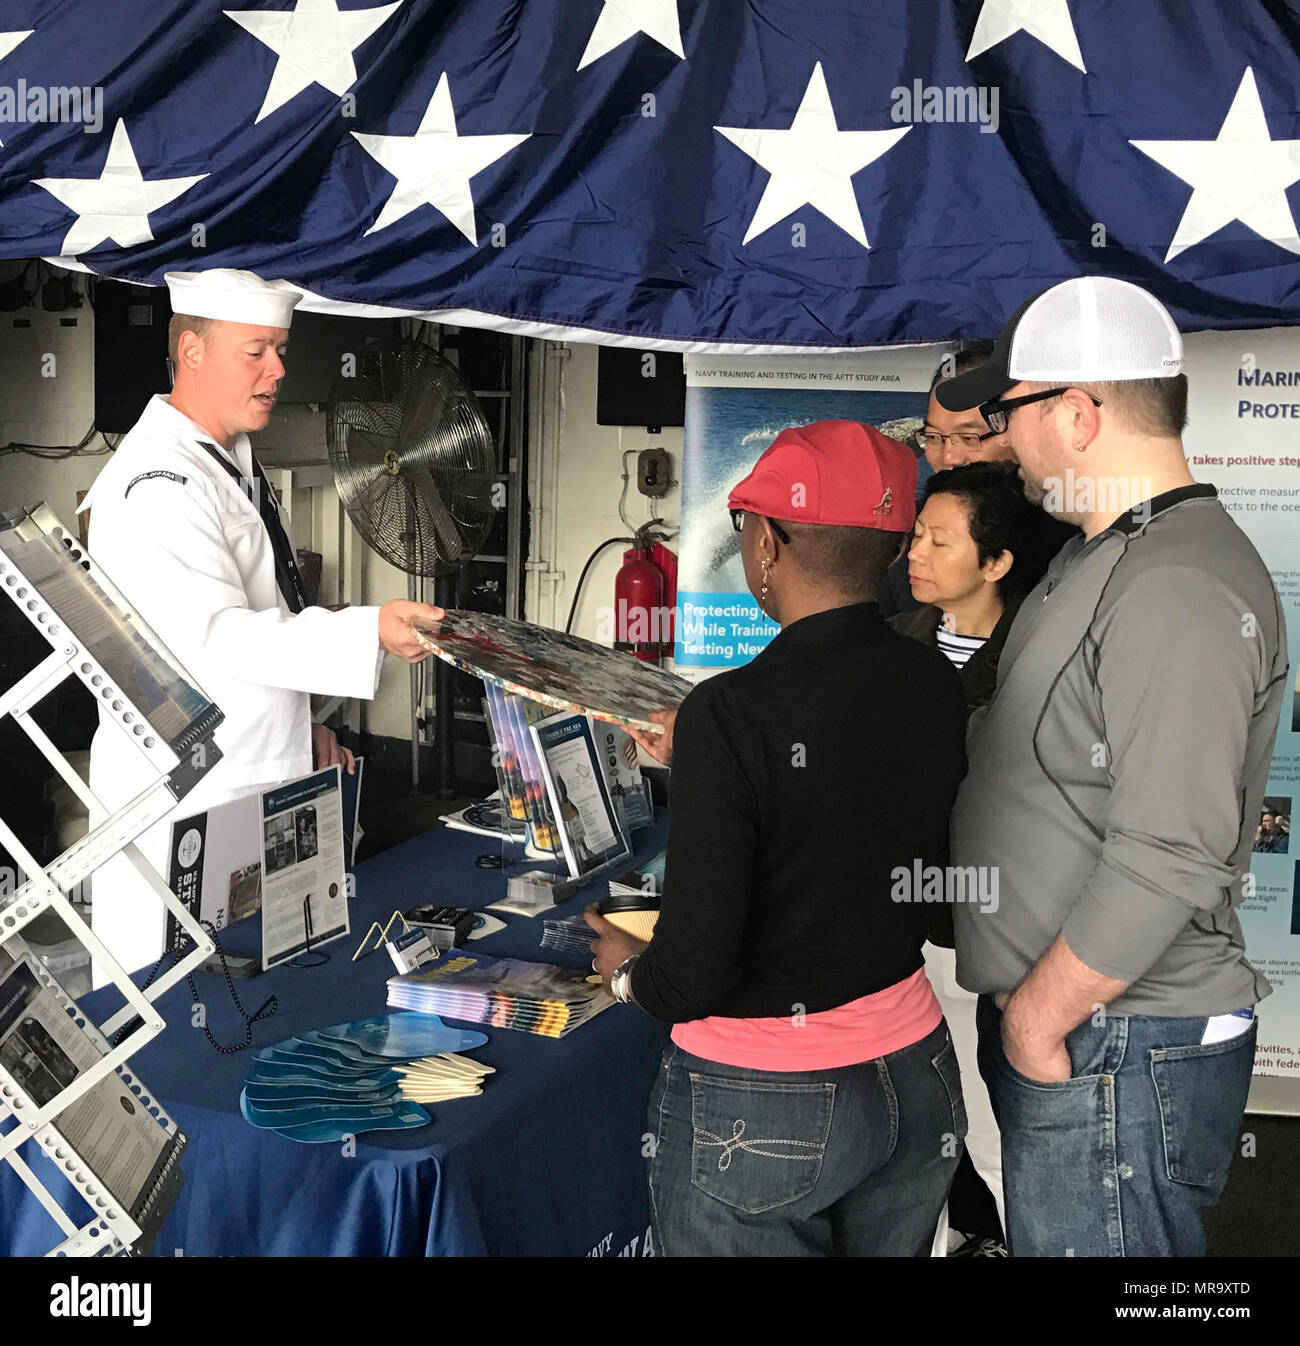 """170528-N-N0701-001 NEW YORK (May 28, 2017) Mass Communication Specialist 1st Class J.R. Peregrino, assigned to U.S. Fleet Forces Command, discusses plastic waste processing with visitors at the """"Stewards of the Sea: Defending Freedom, Protecting the Environment"""" exhibit aboard the guided-missile cruiser USS Monterey (CG 61) at the Brooklyn Cruise Terminals during Fleet Week New York. The Navy employs every means available to mitigate the potential environmental effects of our activities without jeopardizing the safety of our Sailors or impacting our Navy readiness mission. (U.S. Navy photo by  Stock Photo"""